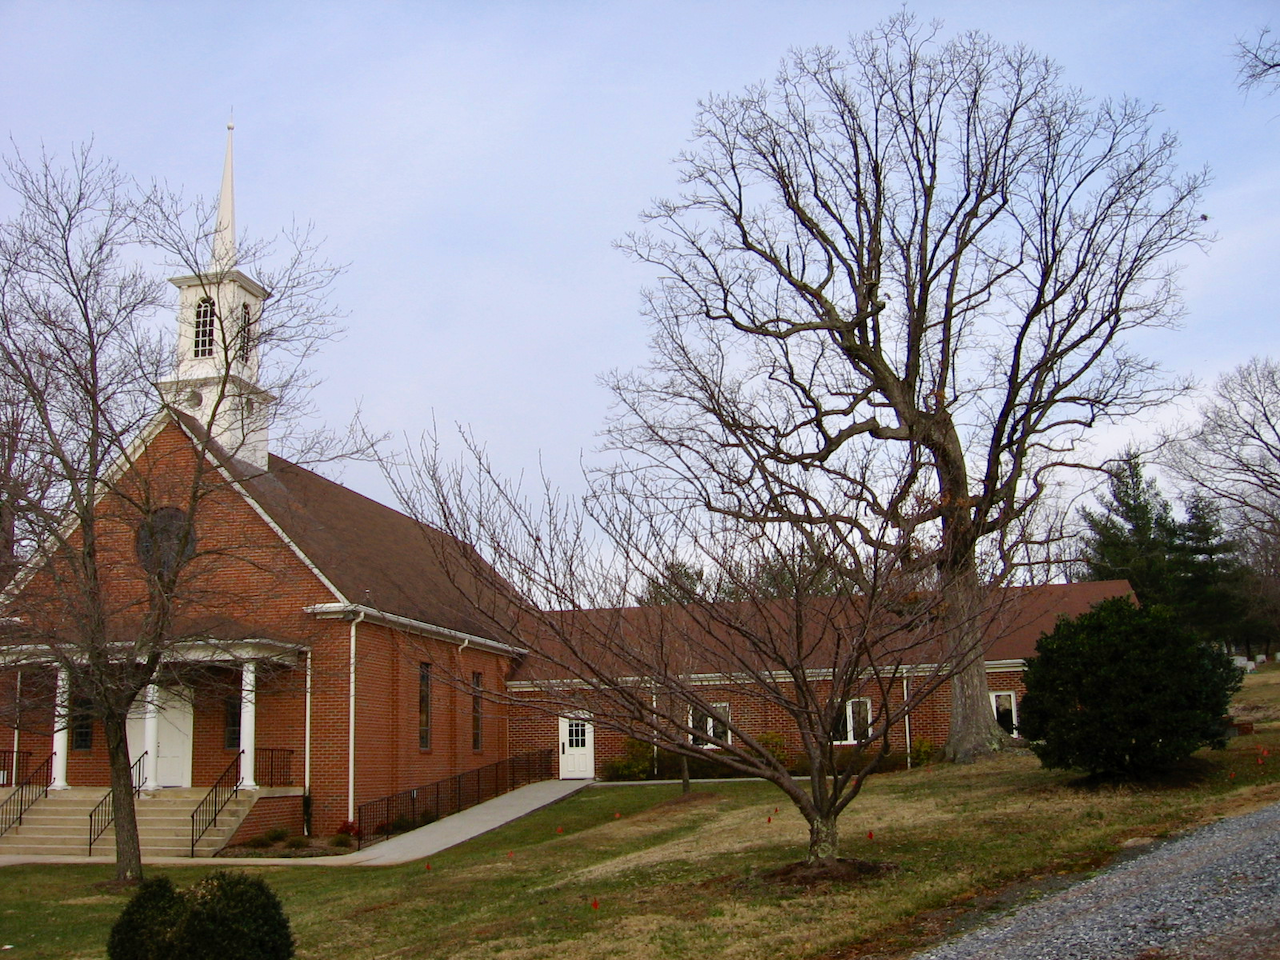 About - EPC is nestled in the beautiful foothills of the Blue Ridge Mountains some 12 miles from Lynchburg, Virginia, and some 12 miles from the entrance on Scenic Route 130 to the Blue Ridge Parkway.The church has been one of the historically important anchors for the Village of Elon and Amherst County. EPC has maintained a vital ministry of worship and mission since its organization in 1873. Today we are seeking to honor and build on that tradition with worship that testifies to the Triune God and seeks, by the power of the Holy Spirit, to manifest the love of Jesus Christ to the community and the world. We are glad you stopped by. Please take a few moments to explore the site. Or, better yet, join us on Sundays for worship!